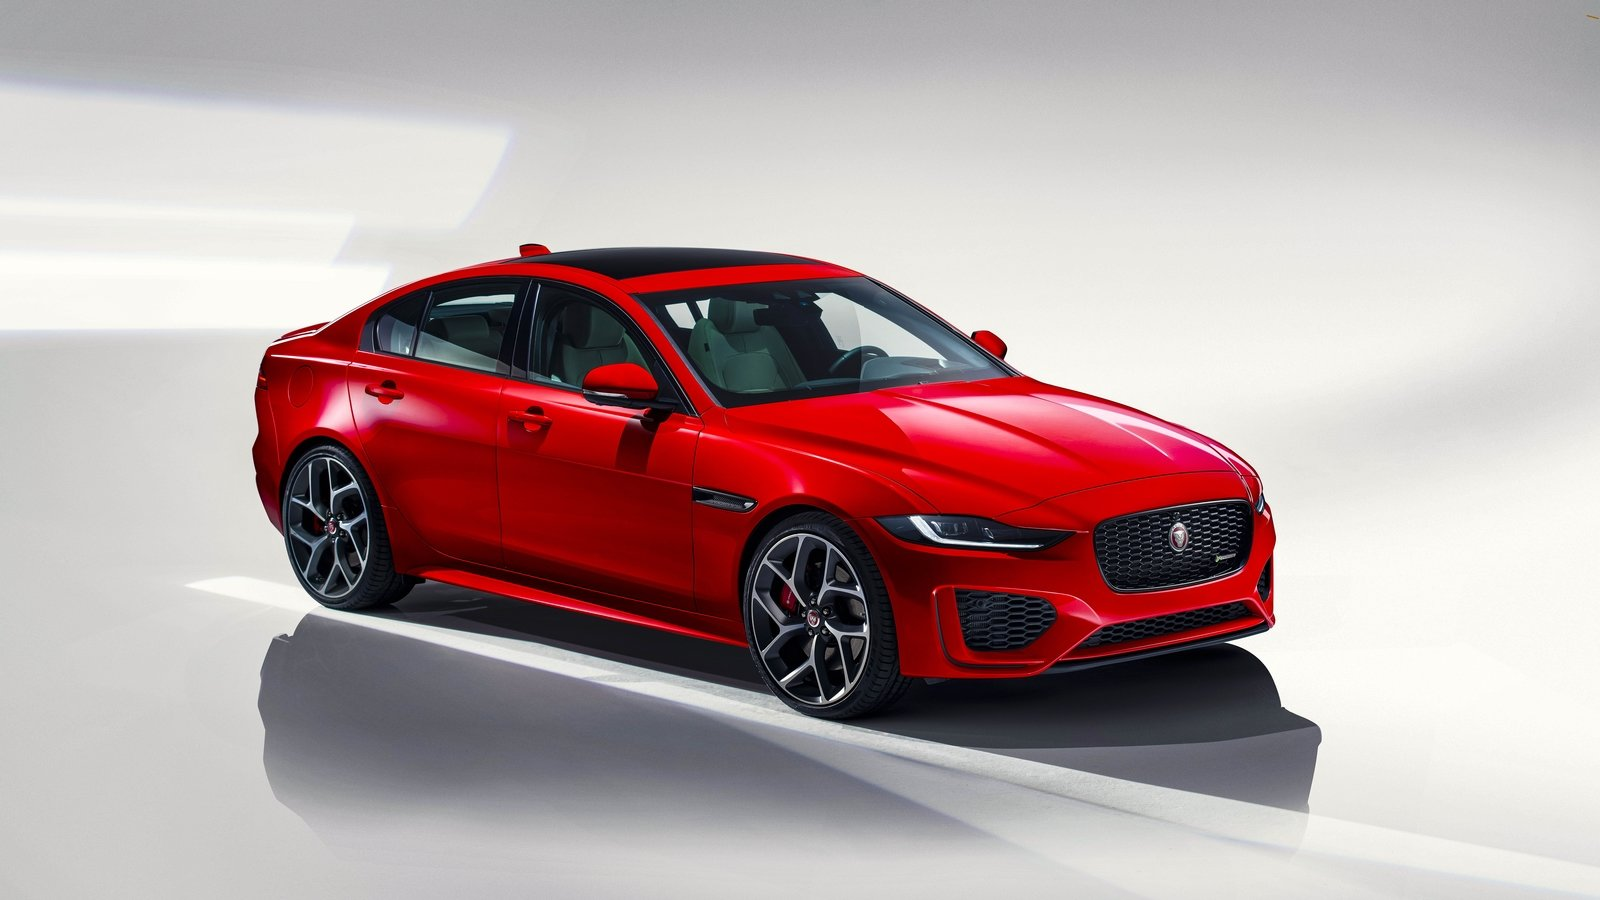 2020 Jaguar Xe Sedan Redesign